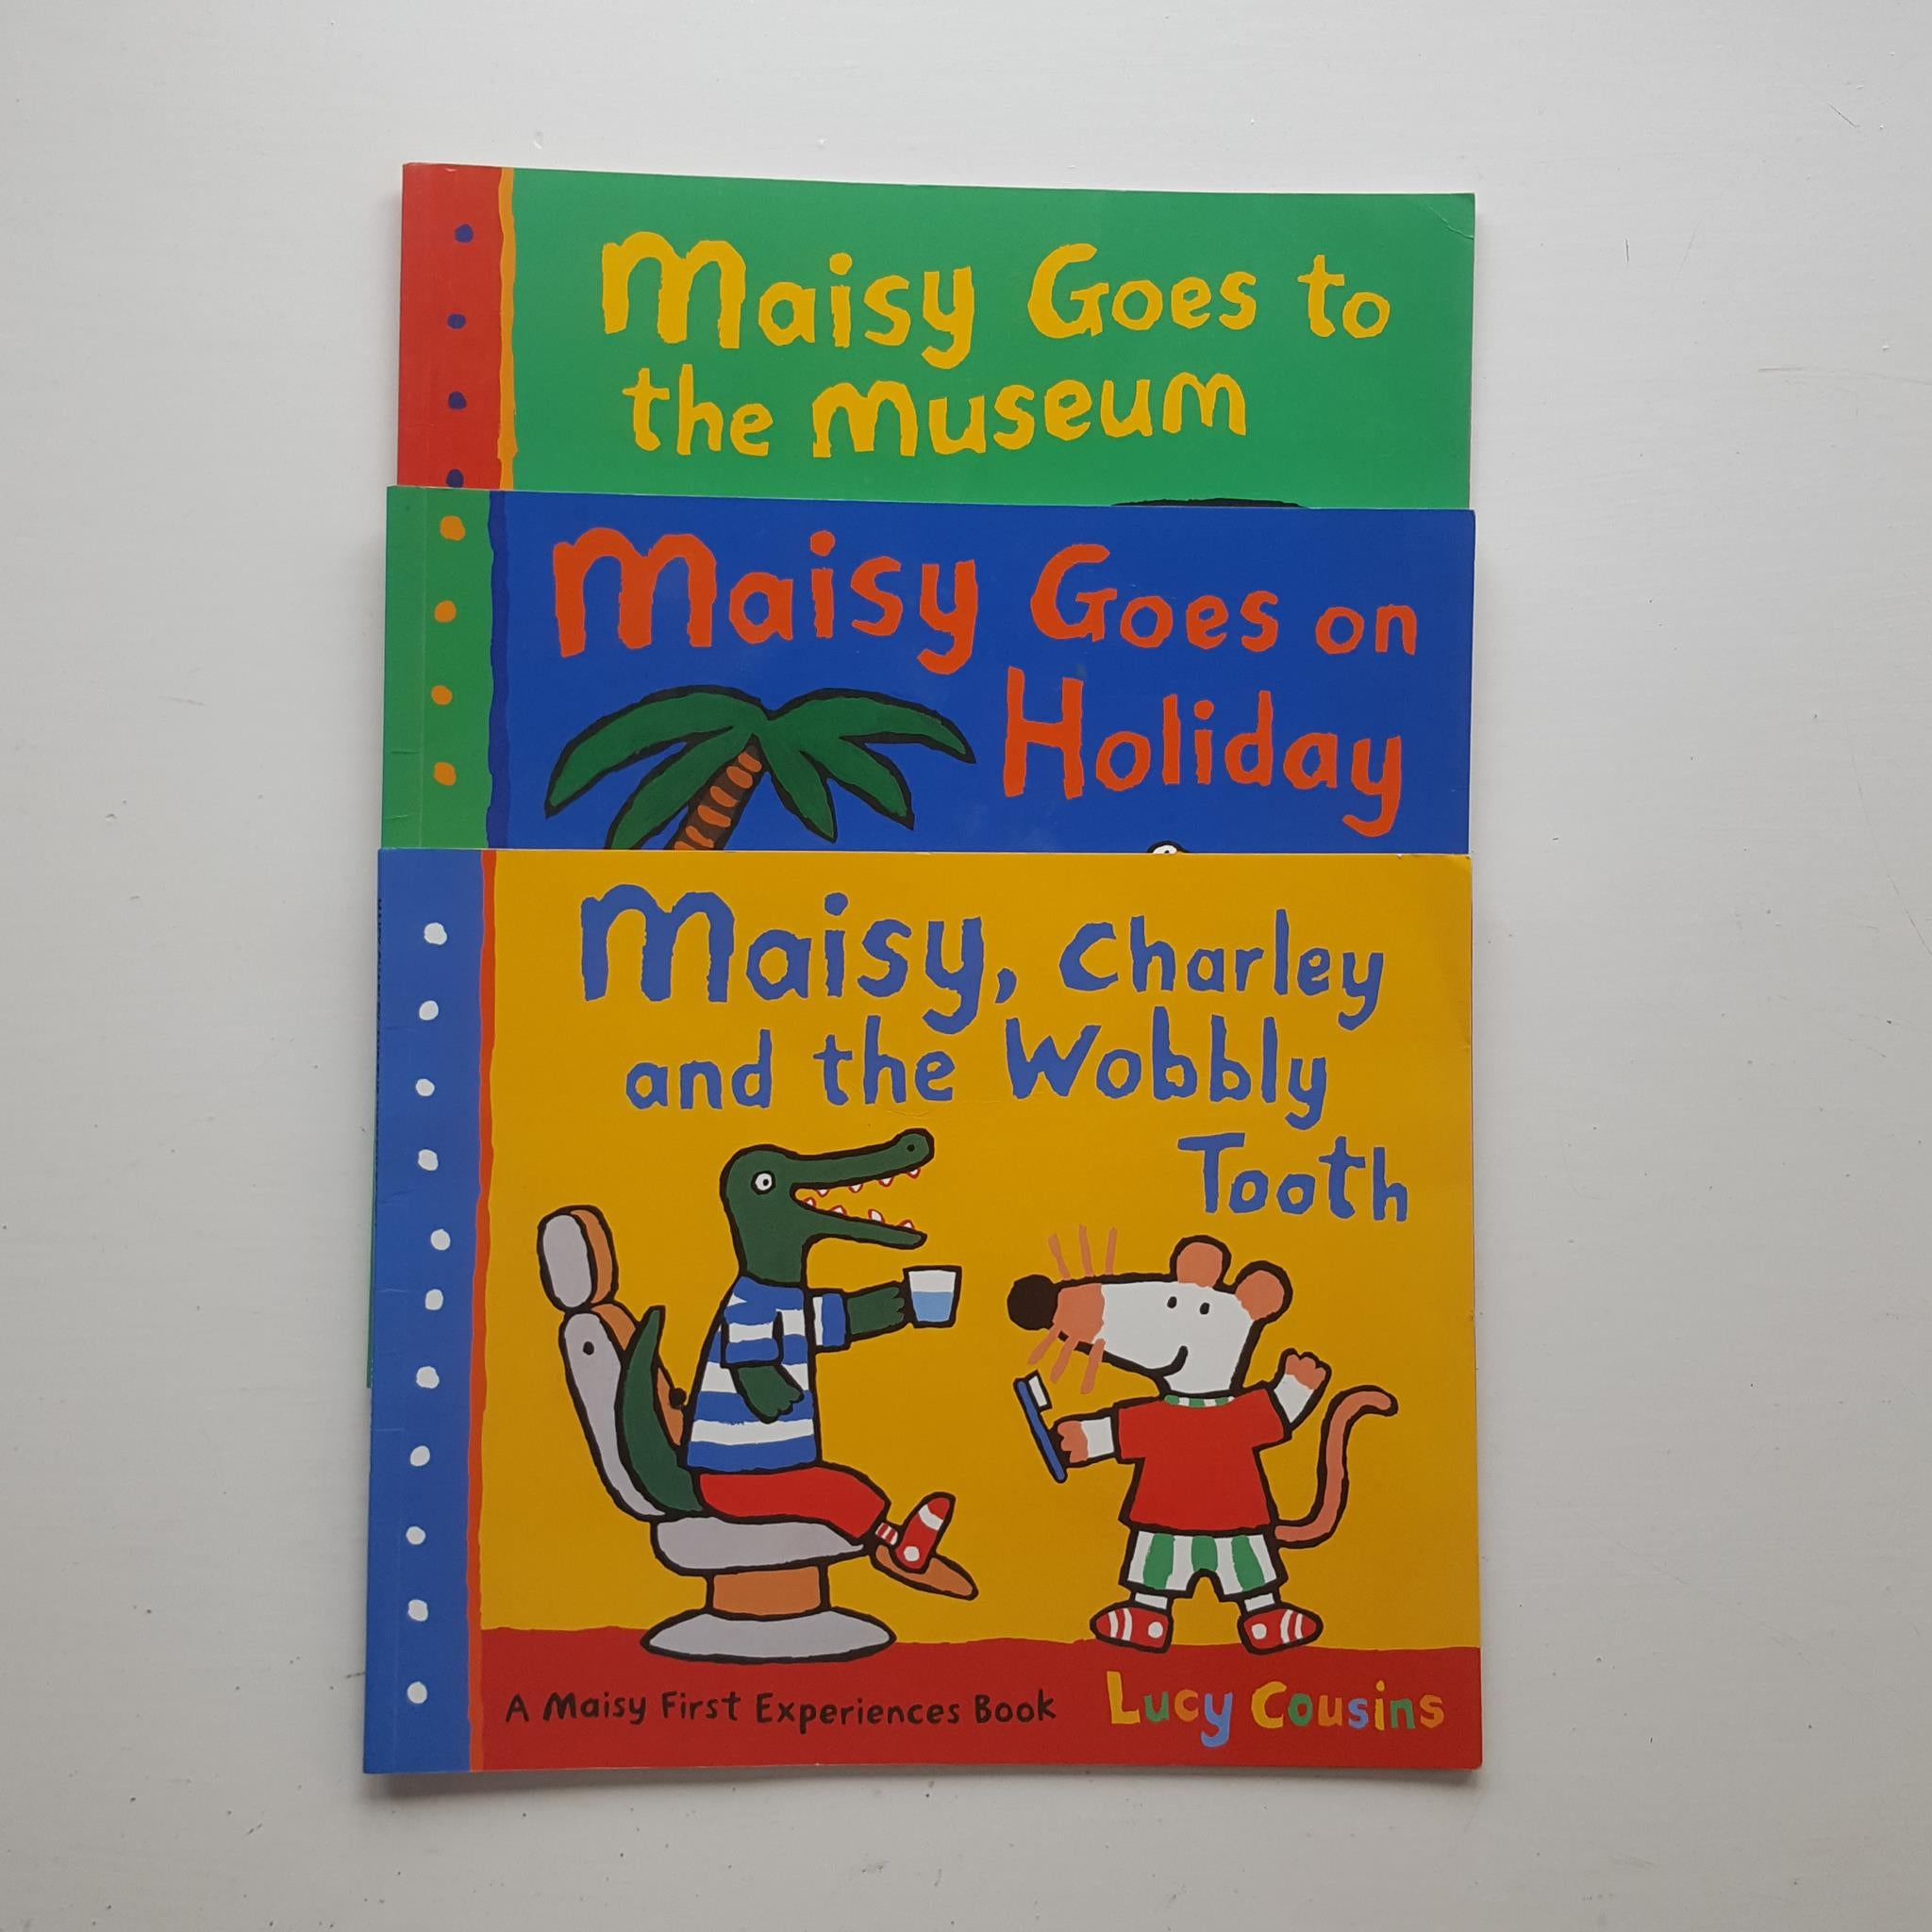 Three Maisy First Experiences Books by Lucy Cousins